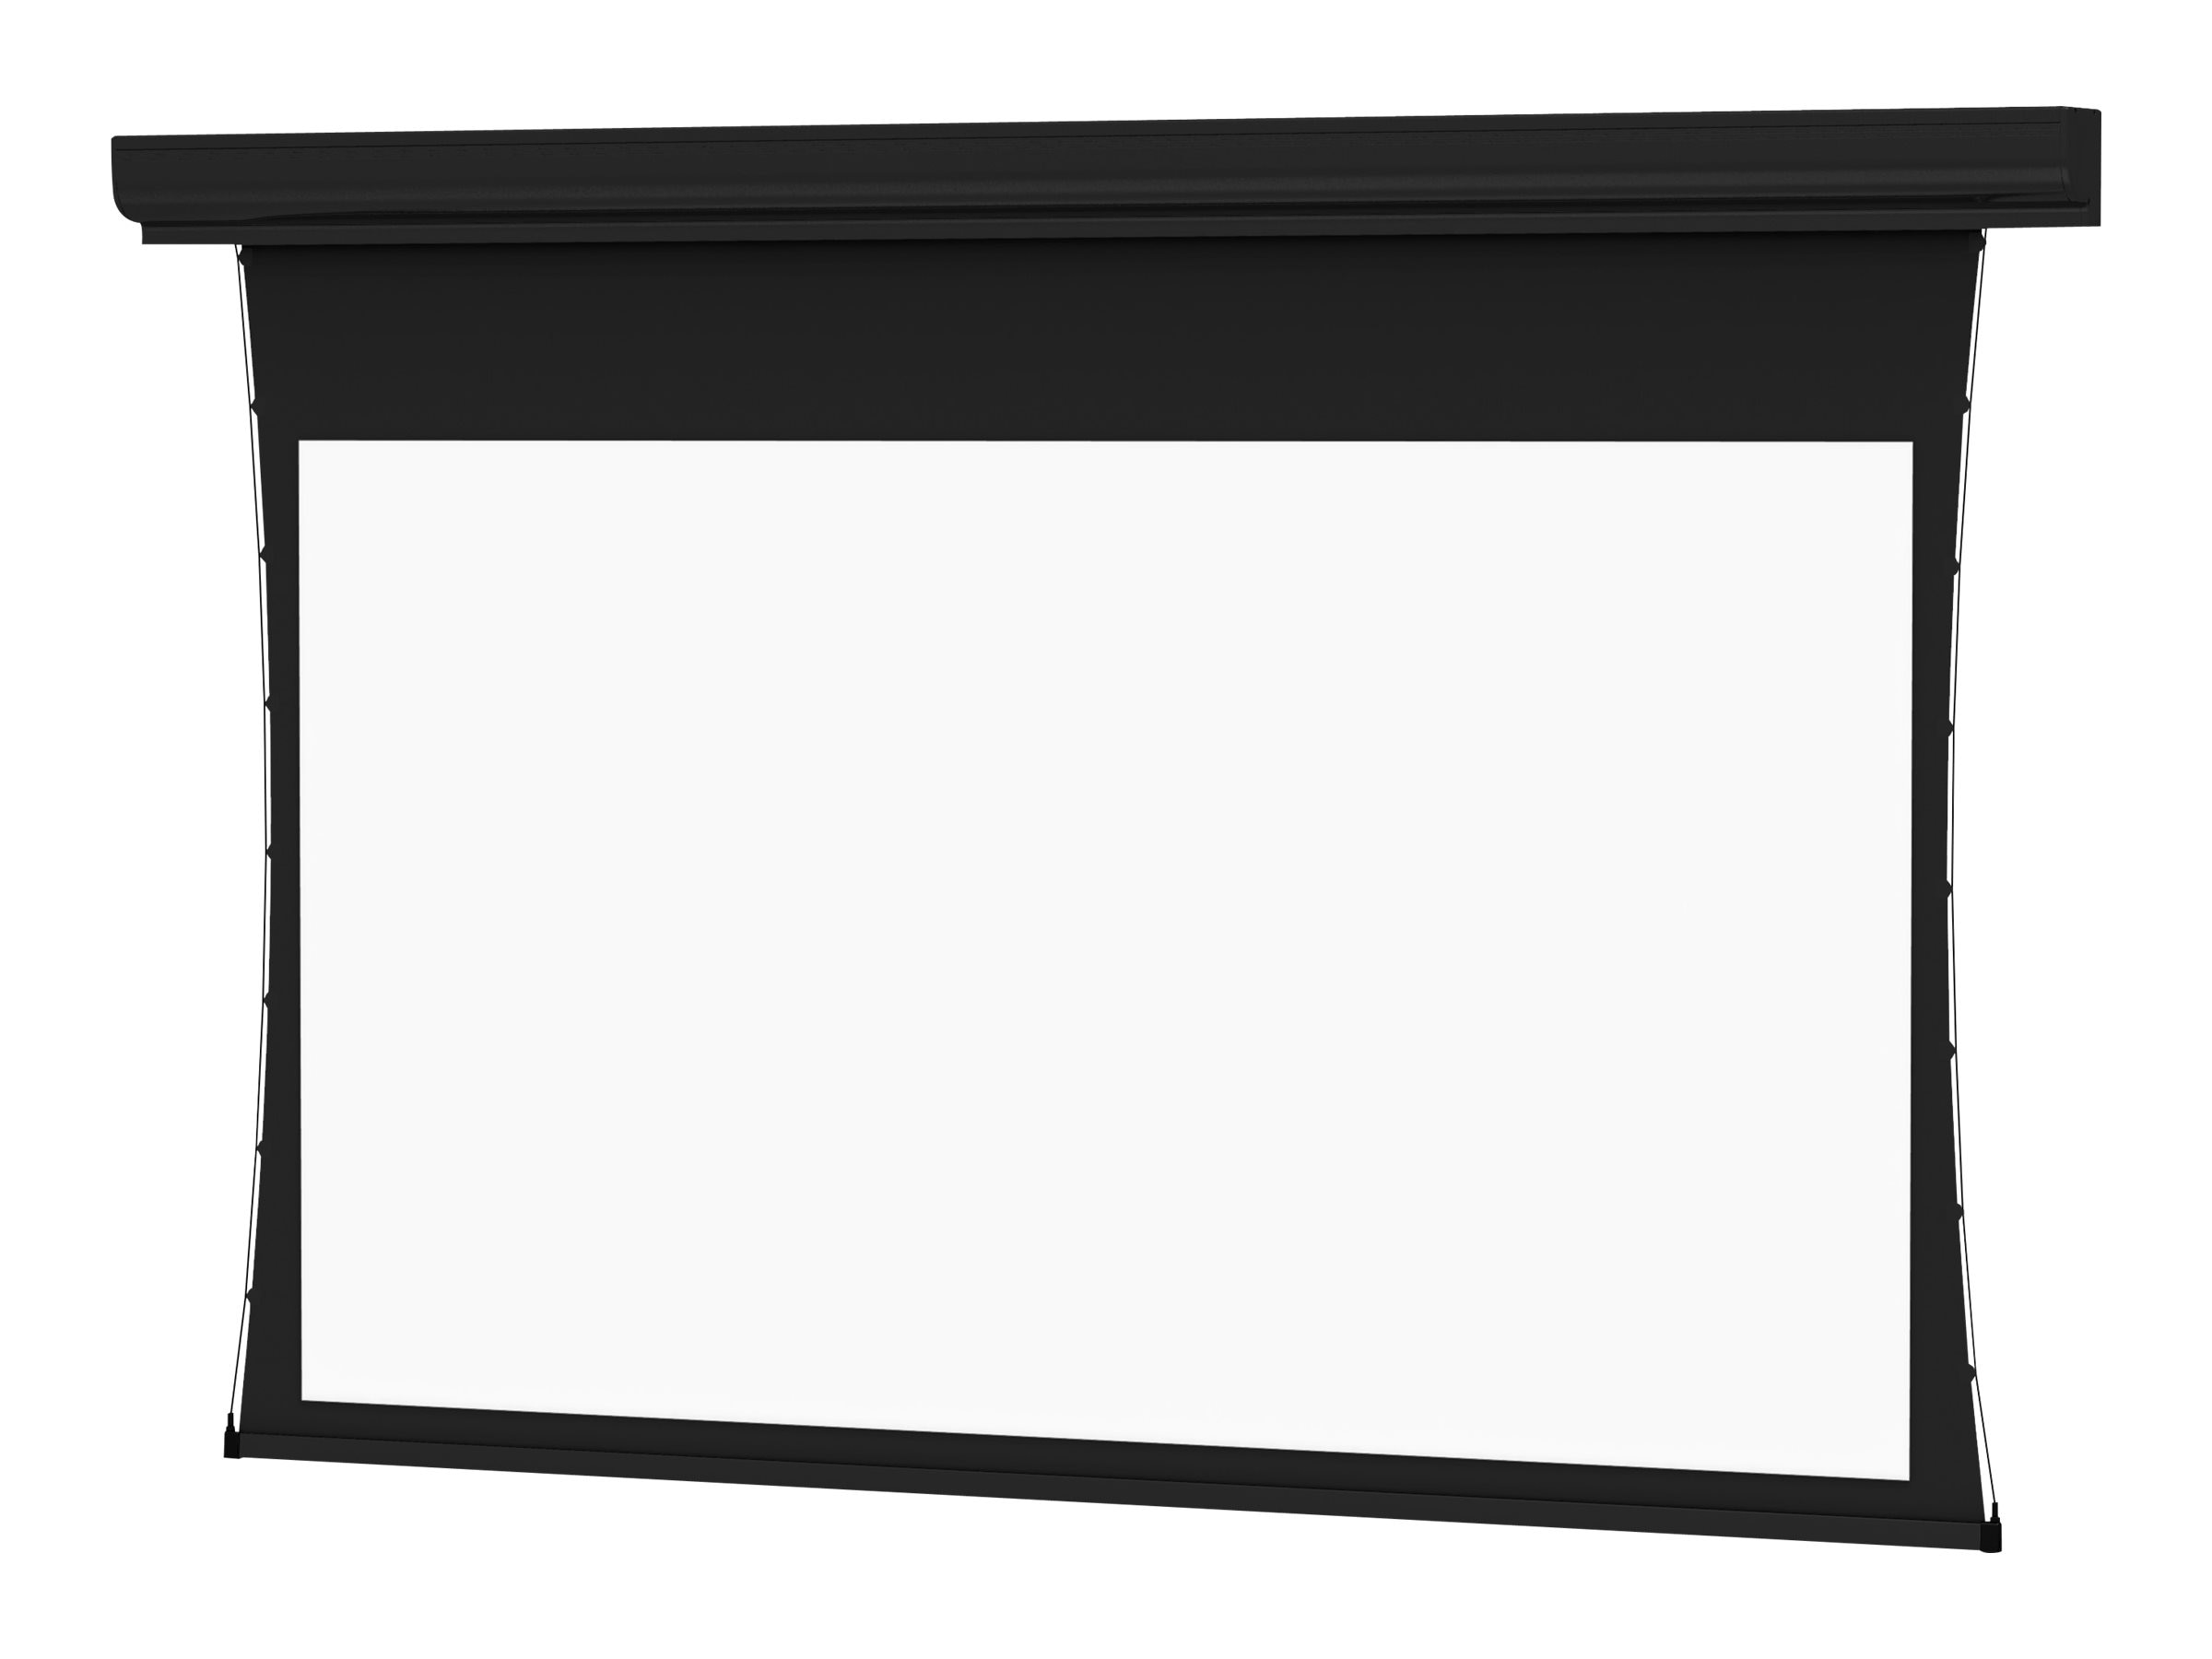 Da-Lite Tensioned Contour Electrol Projection Screen, Dual Vision, 54 x 96, 94219LS